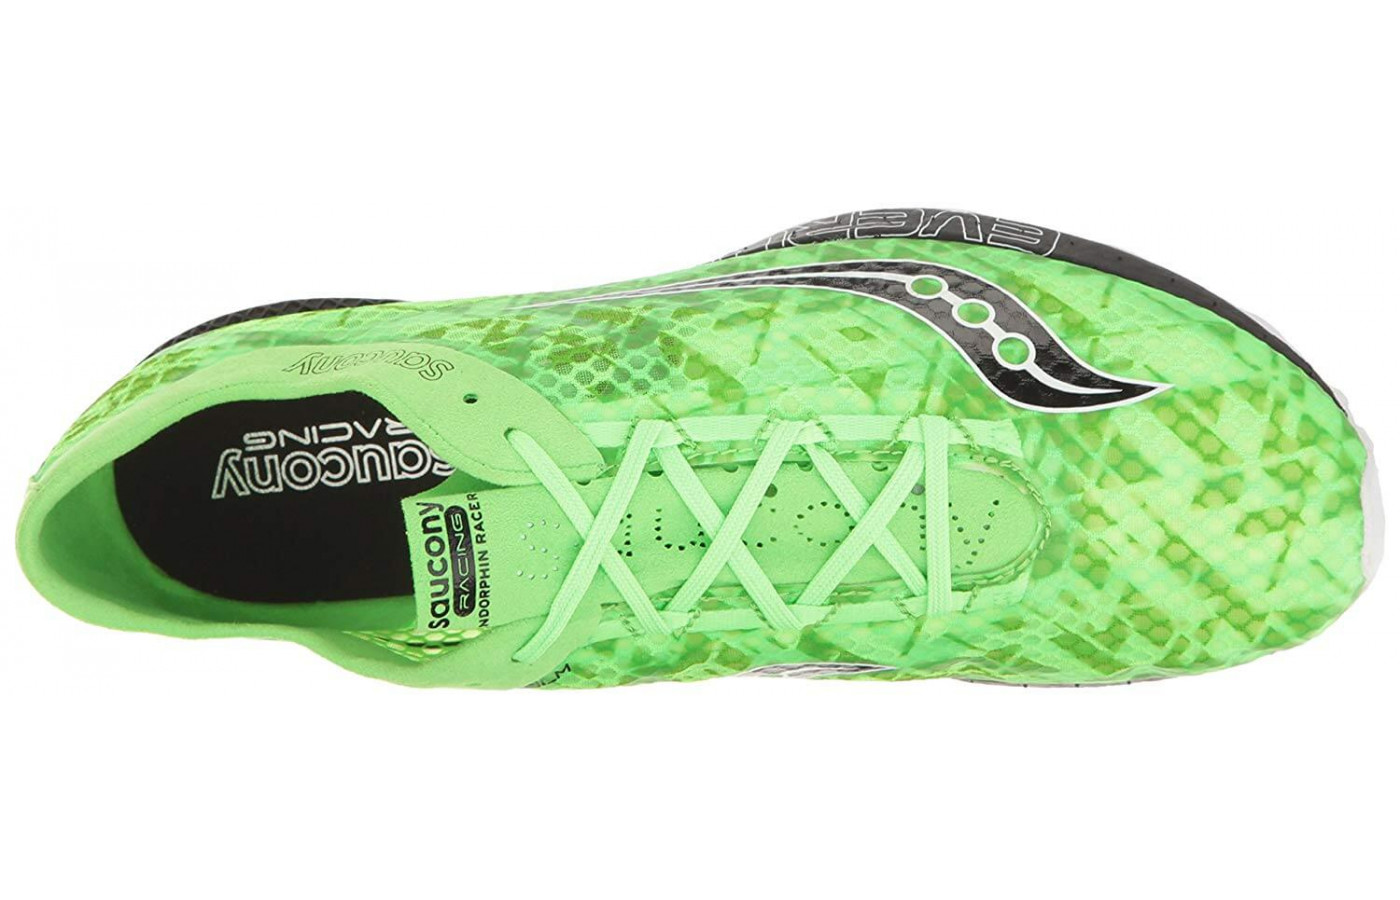 Saucony Endorphin Racer 2 top down view